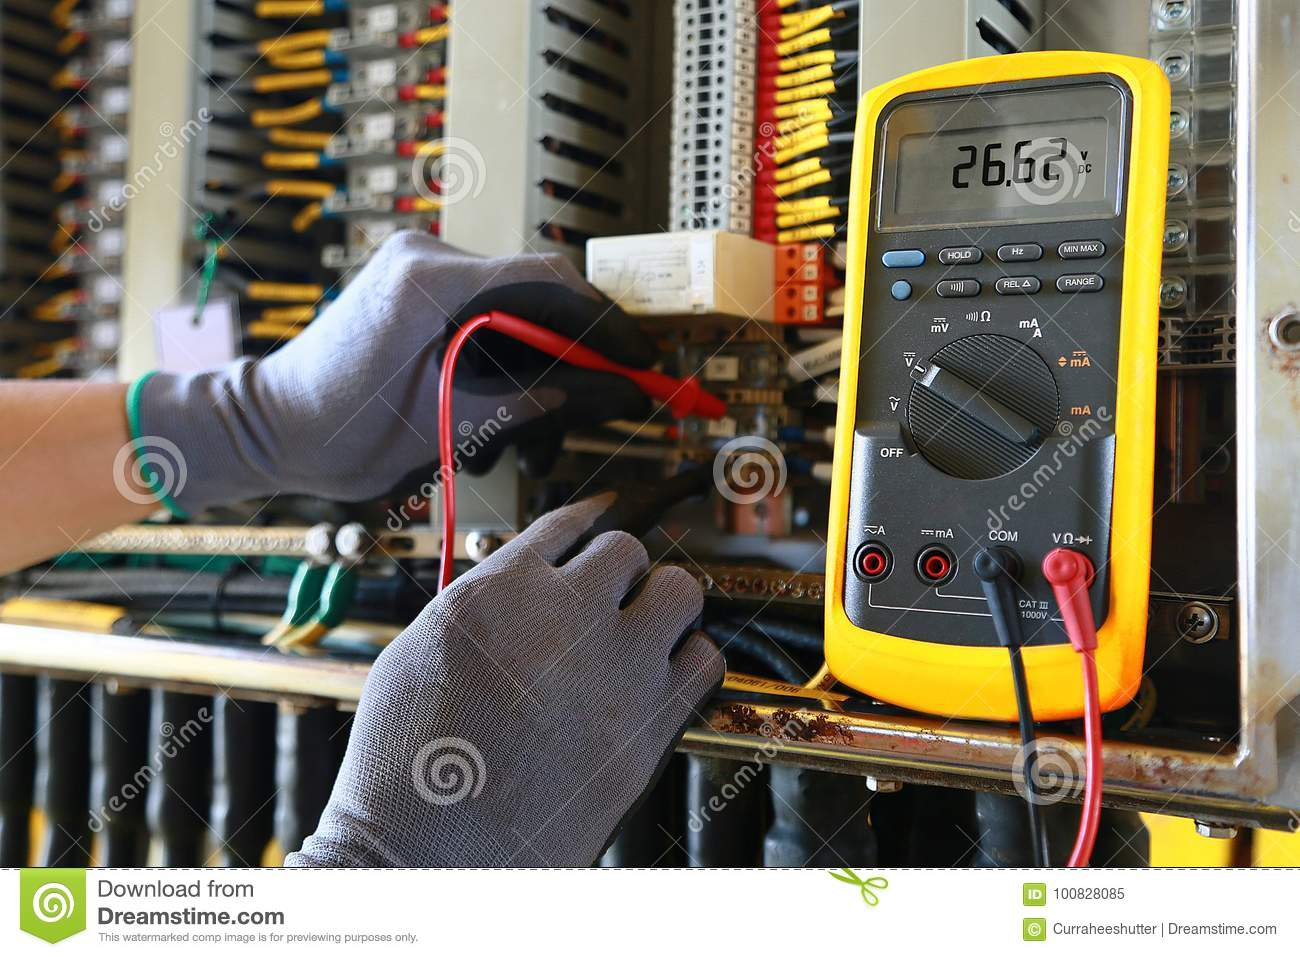 hight resolution of electrical terminal in junction box and service by technician electrical device install in control panel